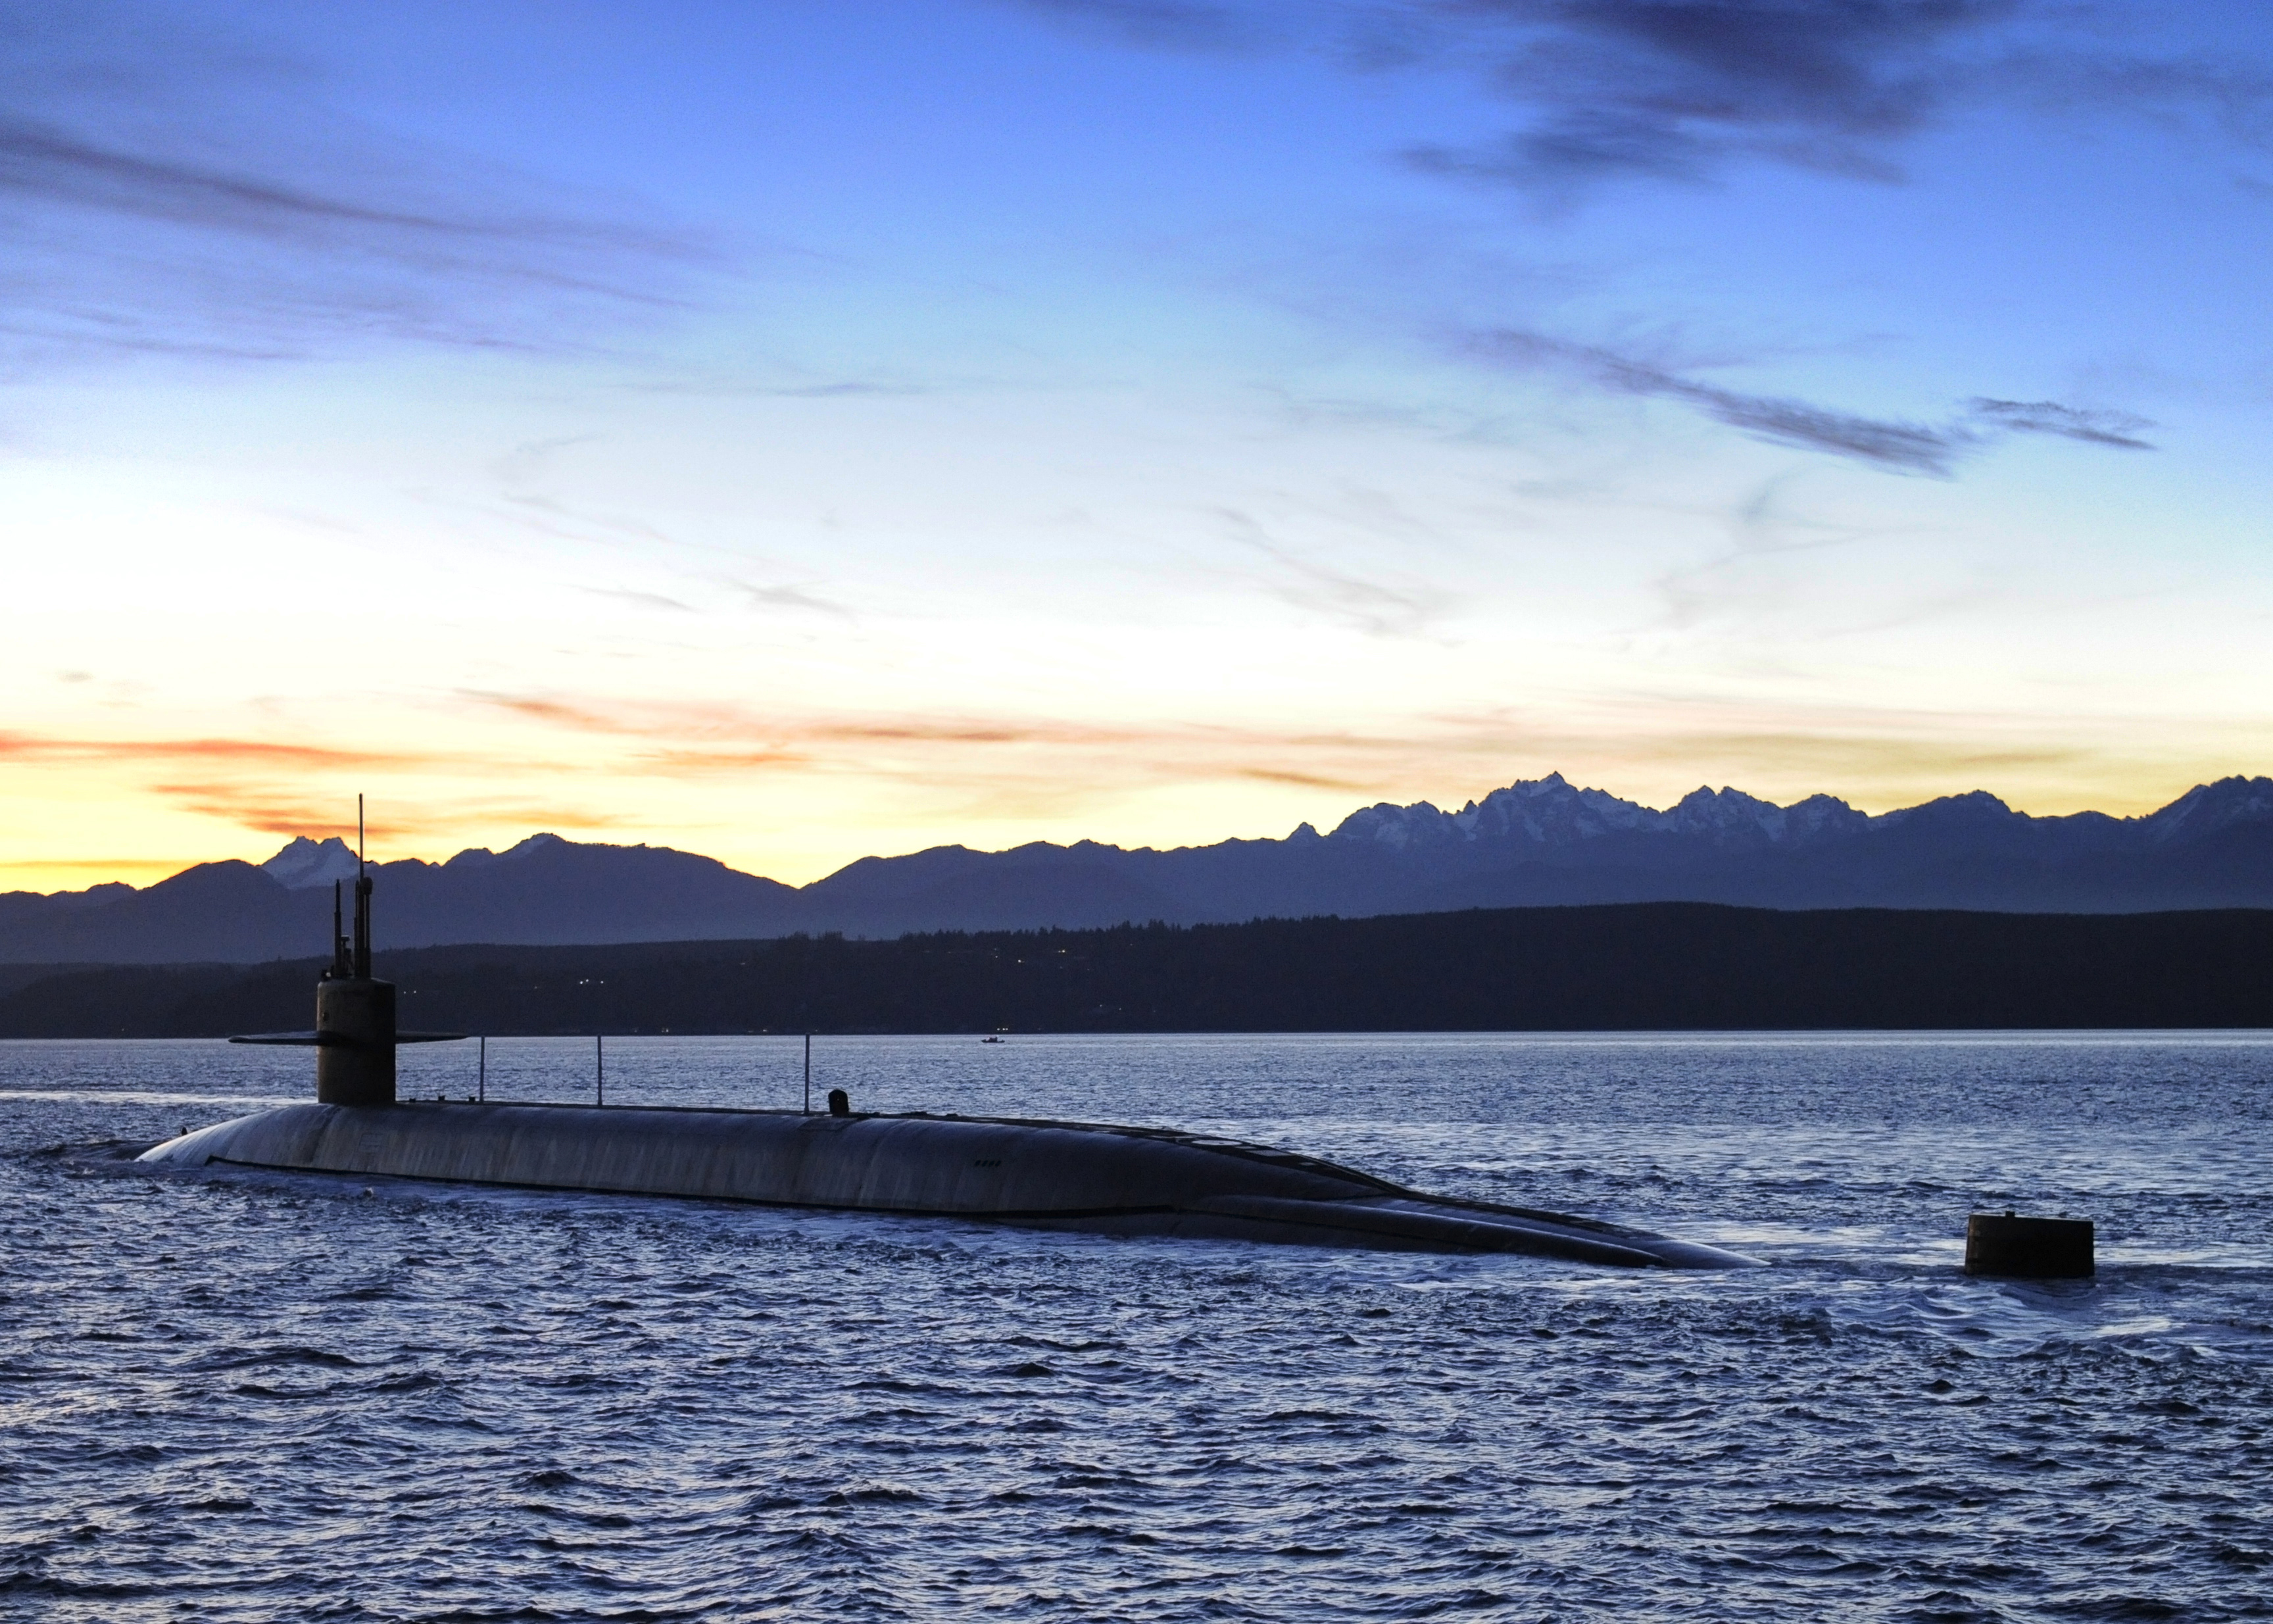 USS Nevada (SSBN-733) transits the Washington state Puget Sound on its way to Naval Base Kitsap-Bangor on Jan. 14, 2016. US Navy Photo